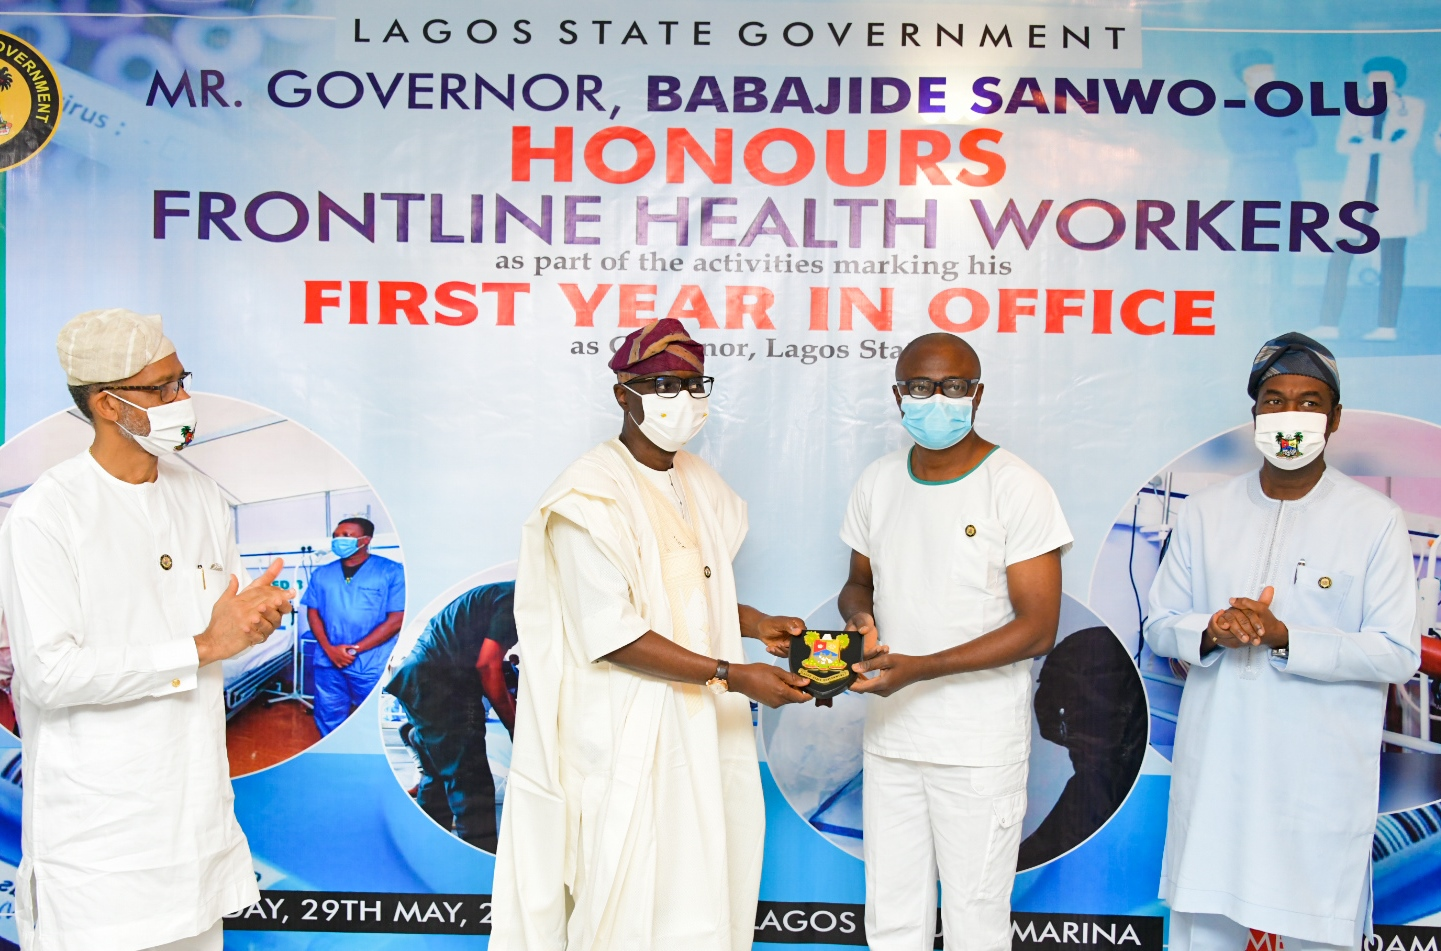 L-R: Lagos State Commissioner for Health, Prof. Akin Abayomi; Governor Babajide Sanwo-Olu, presenting a plaque to a Frontline Health worker, Dr. Sunday Oluseyi Adesola - Principal Medical Officer 1 at Isolation Centre, Mainland Hospital Yaba, and the Deputy Governor, Dr. Obafemi Hamzat during the Governor's award presentation to Frontline Health workers as part of activities to commemorate his administration's First Year in Office, at Lagos House, Marina, on Friday, May 29, 2020.